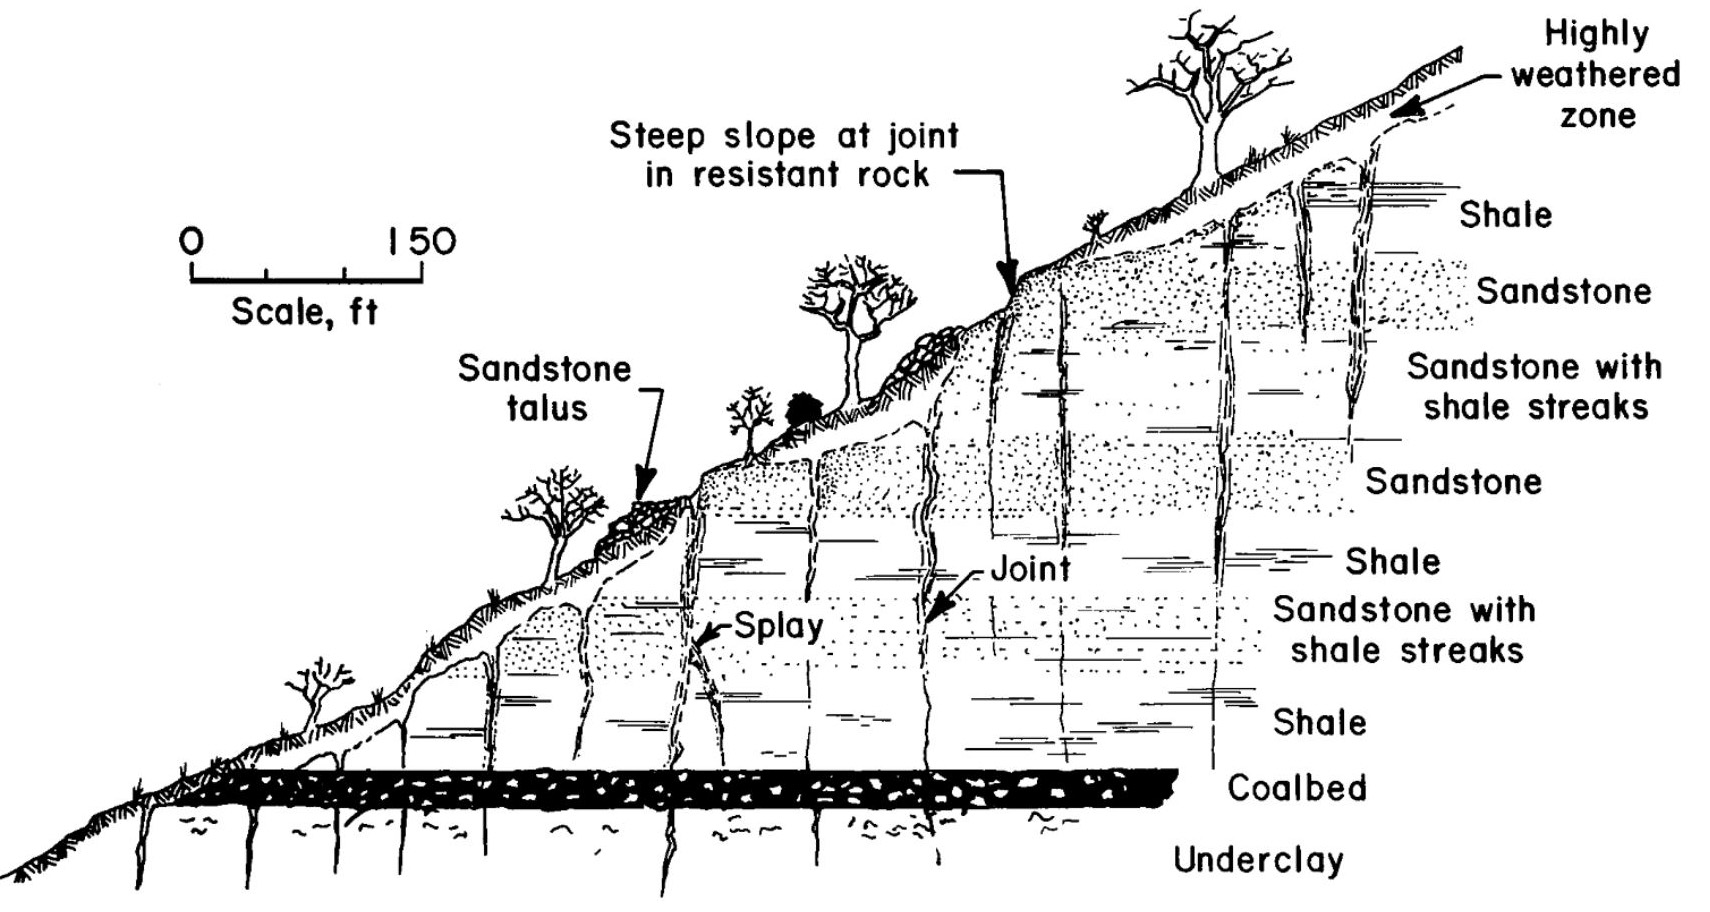 slope orientation diagram shed roof coal kentucky geological survey university of